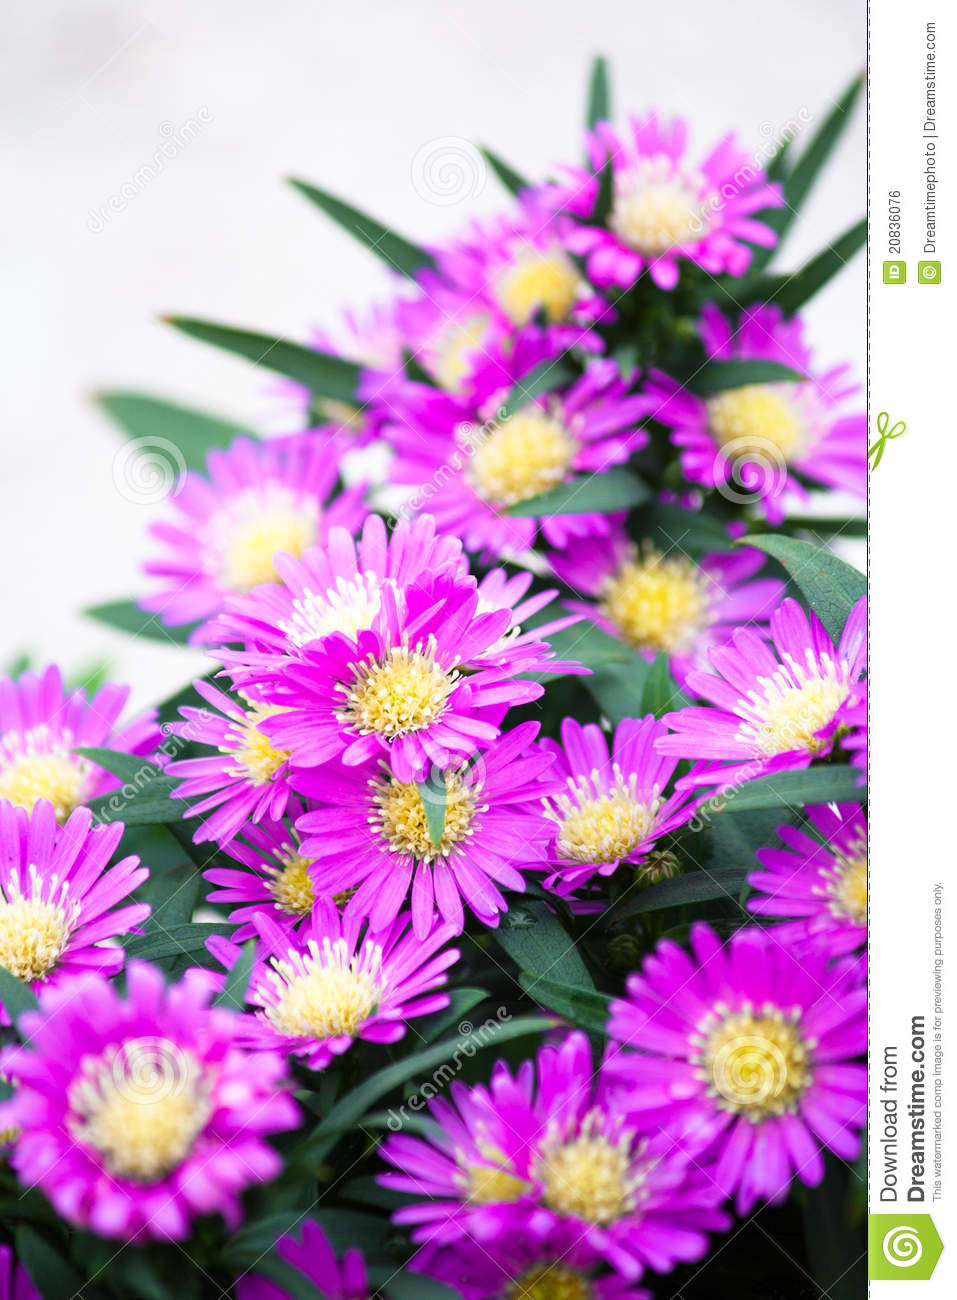 Beauty of flowers stock photo image of background field 20836076 beauty of flowers background field izmirmasajfo Images